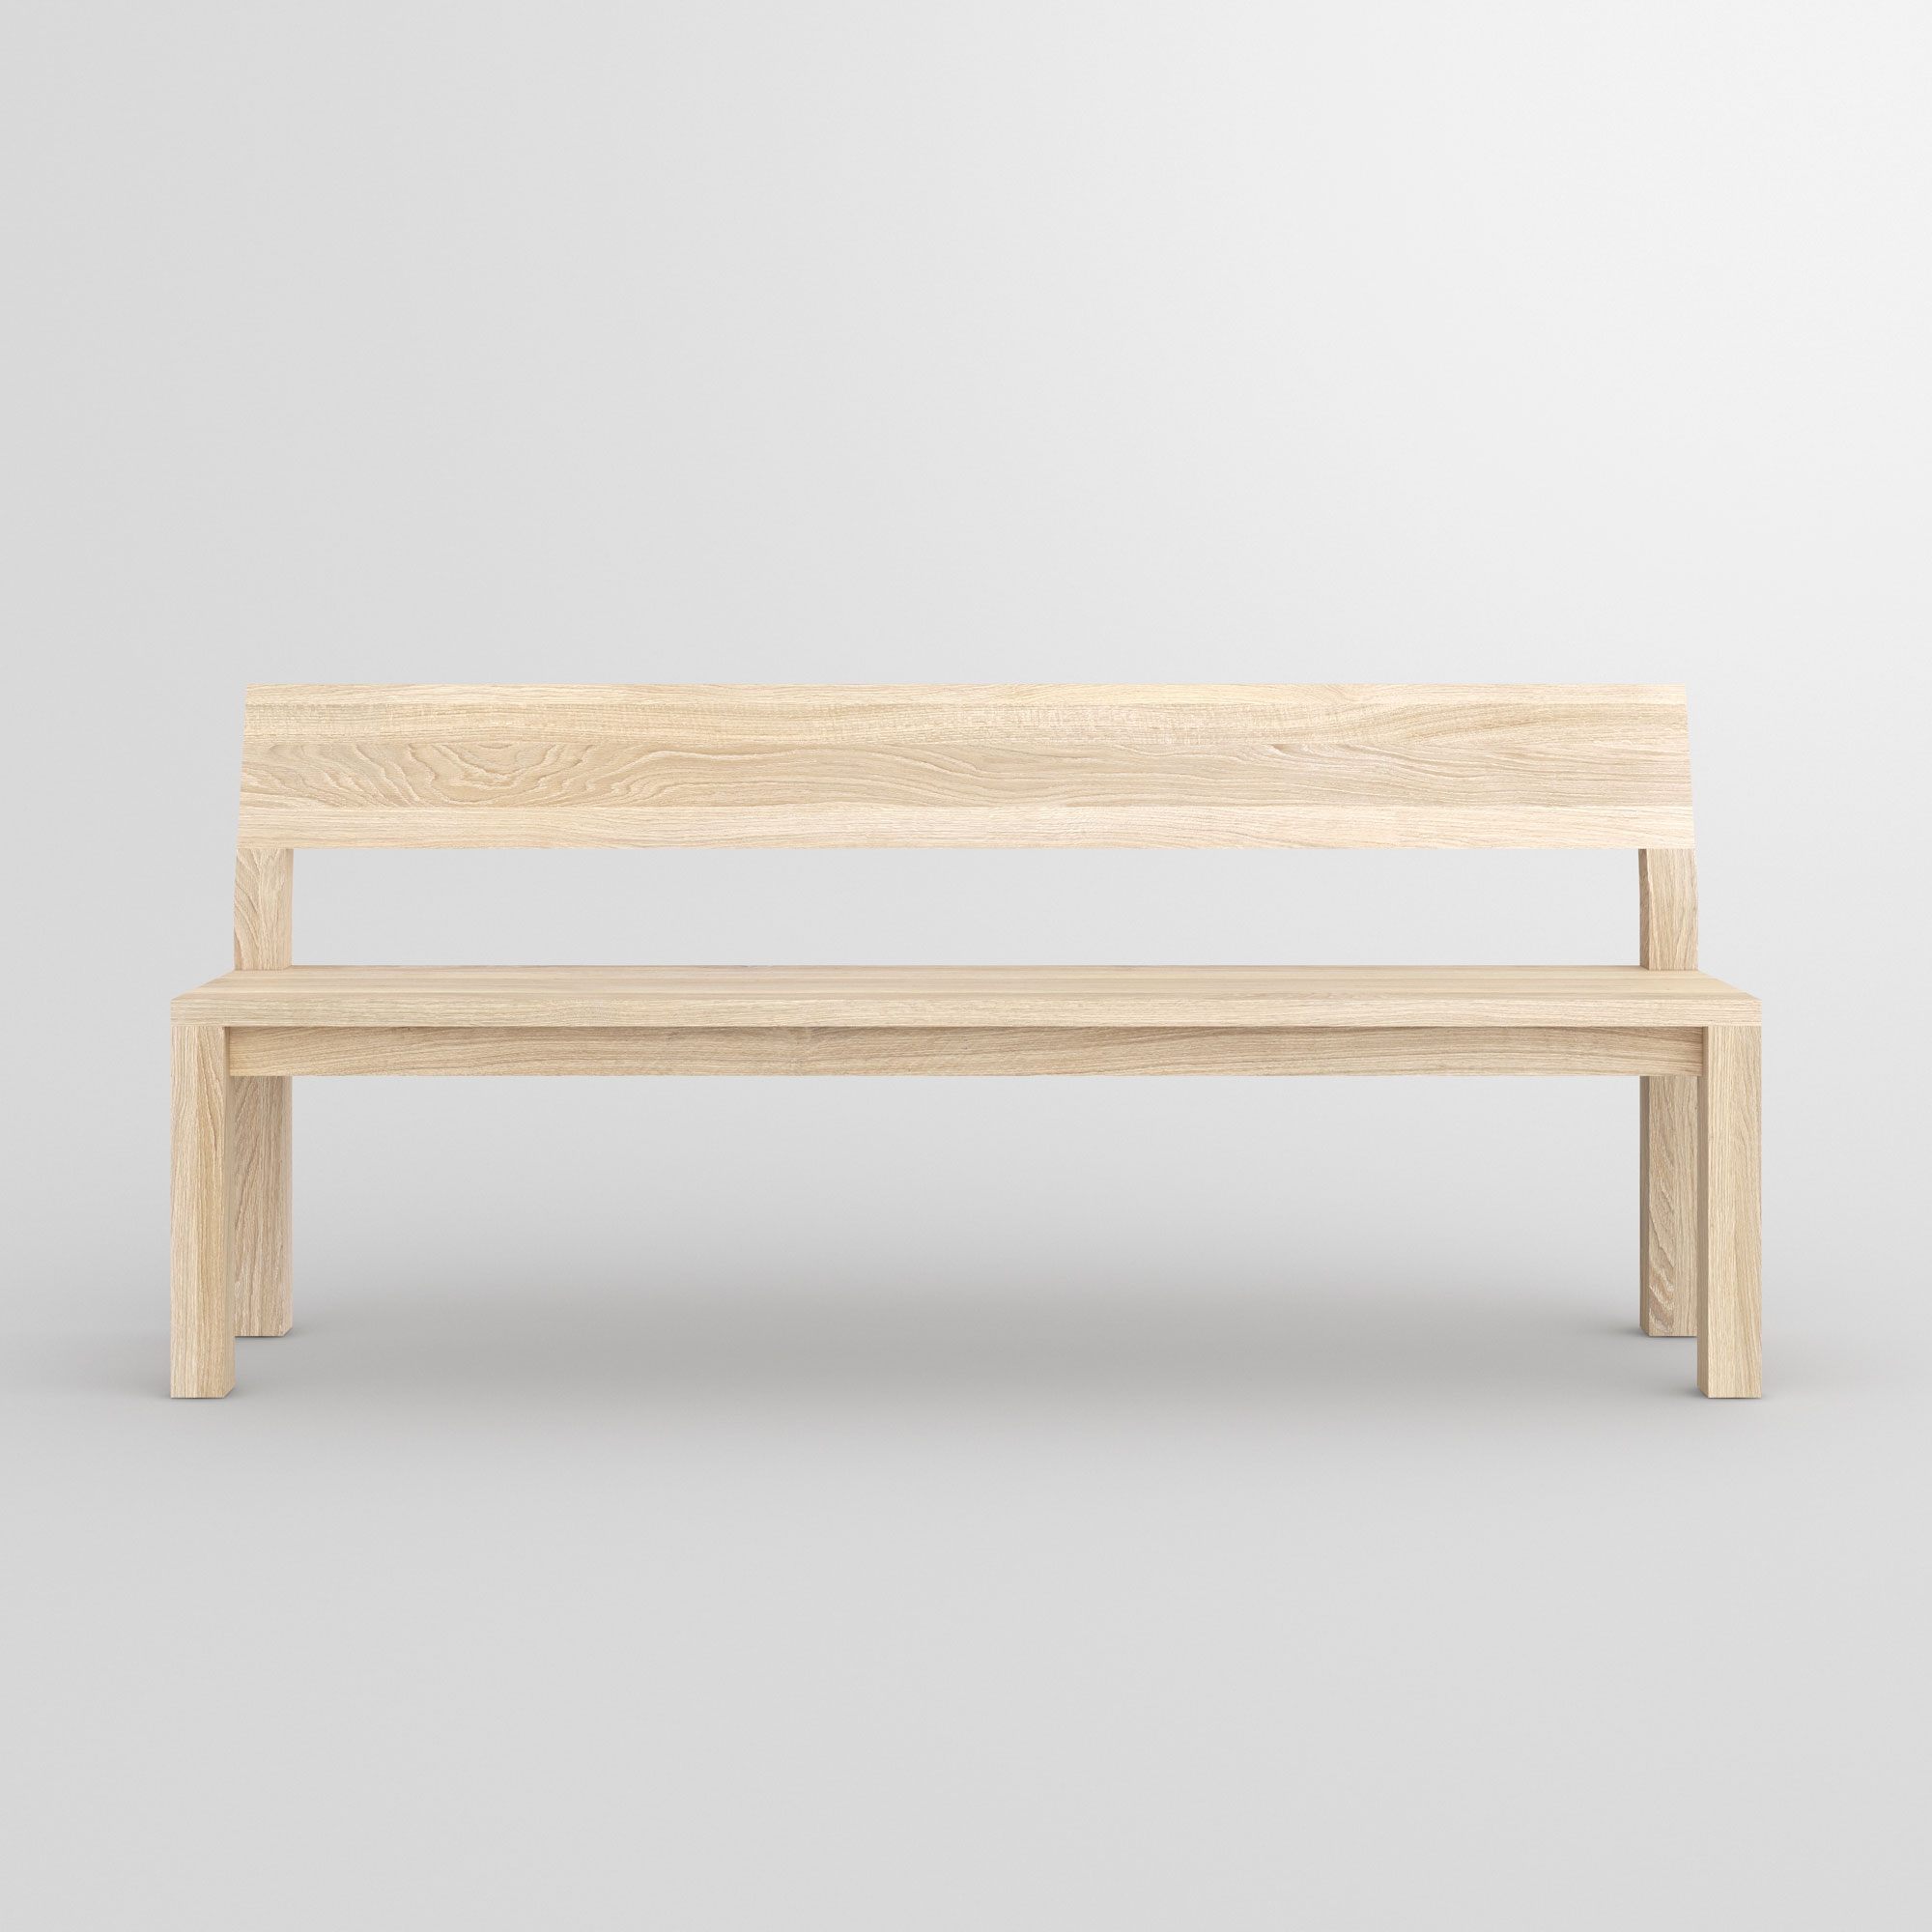 Bench with Backrest CUBUS RL cam3 custom made in solid wood by vitamin design